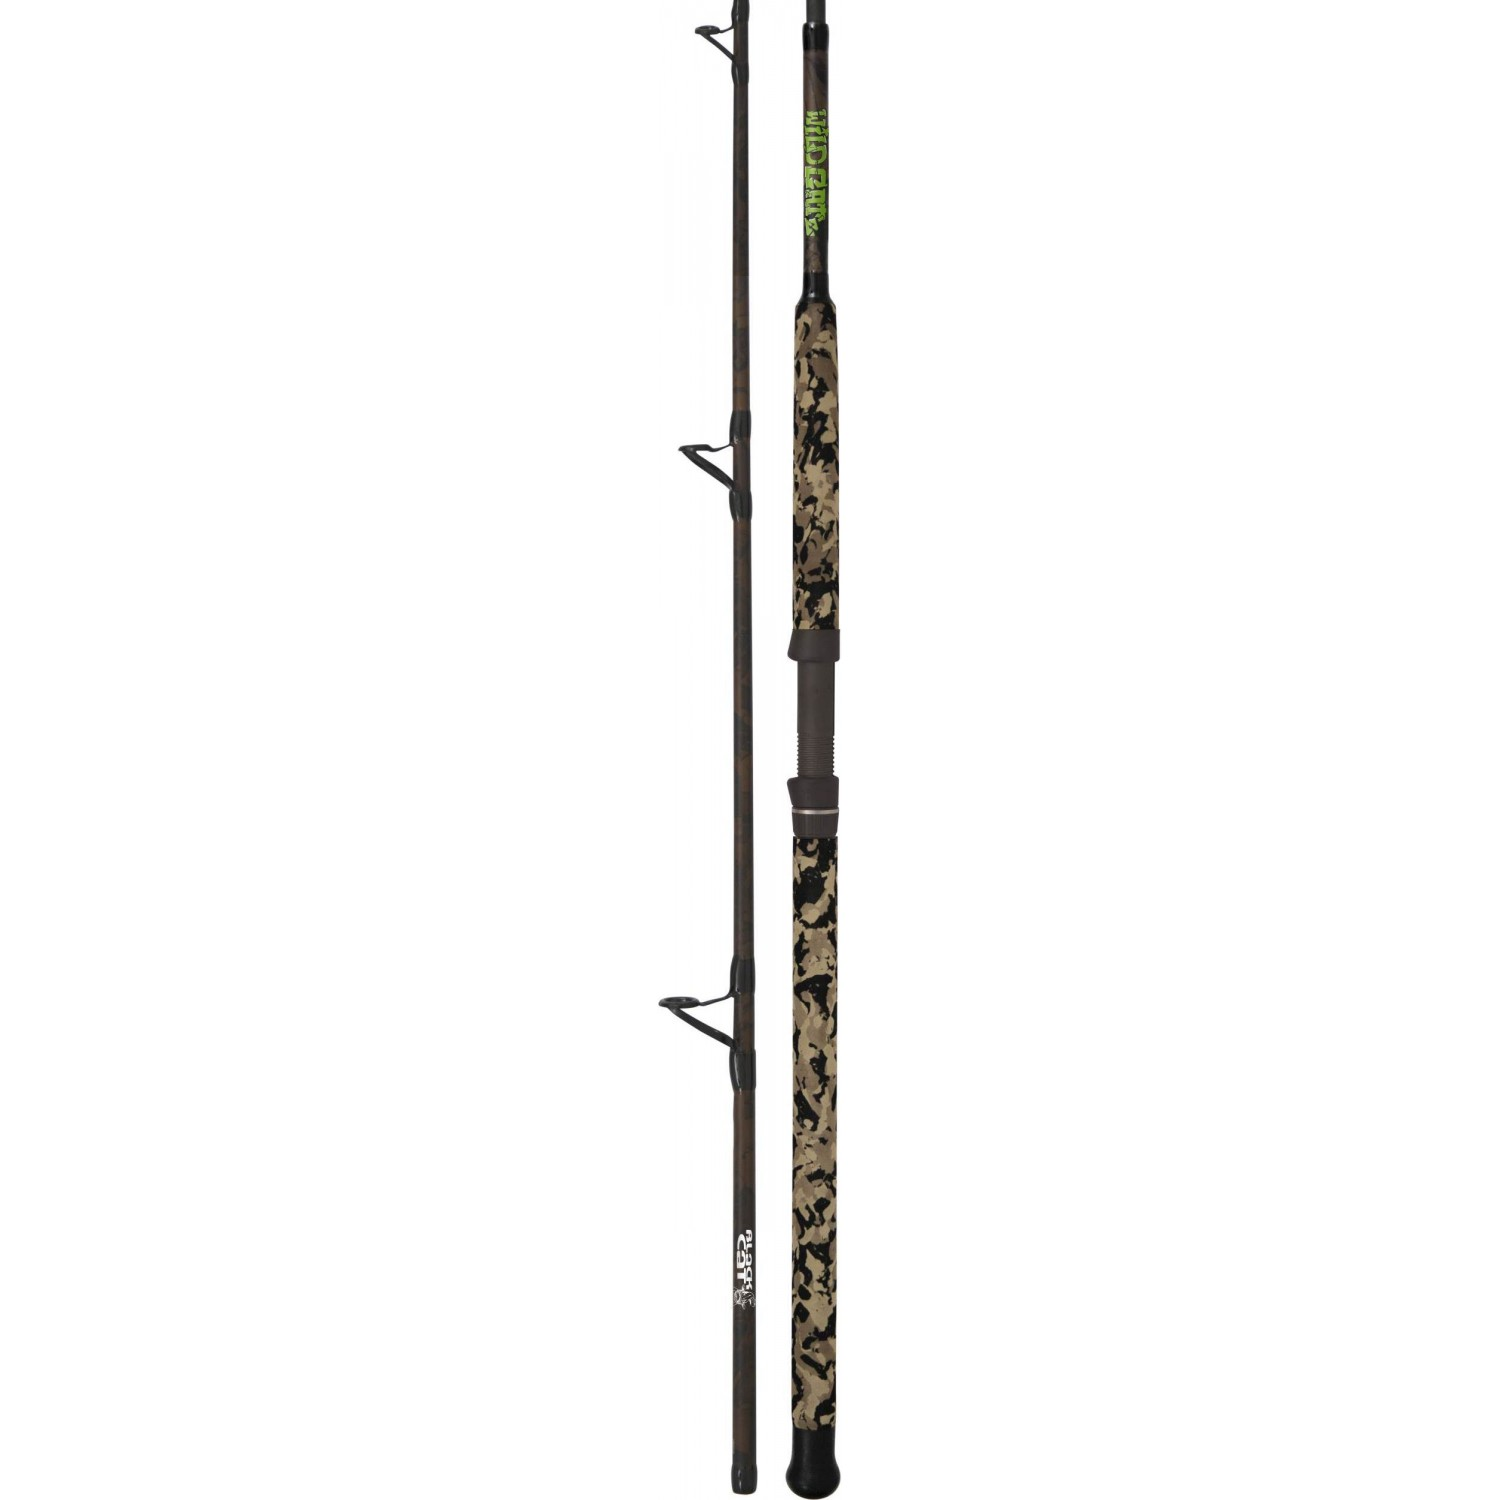 Rhino Black Cat Wild Cat'z, 2.85m, 150-300g